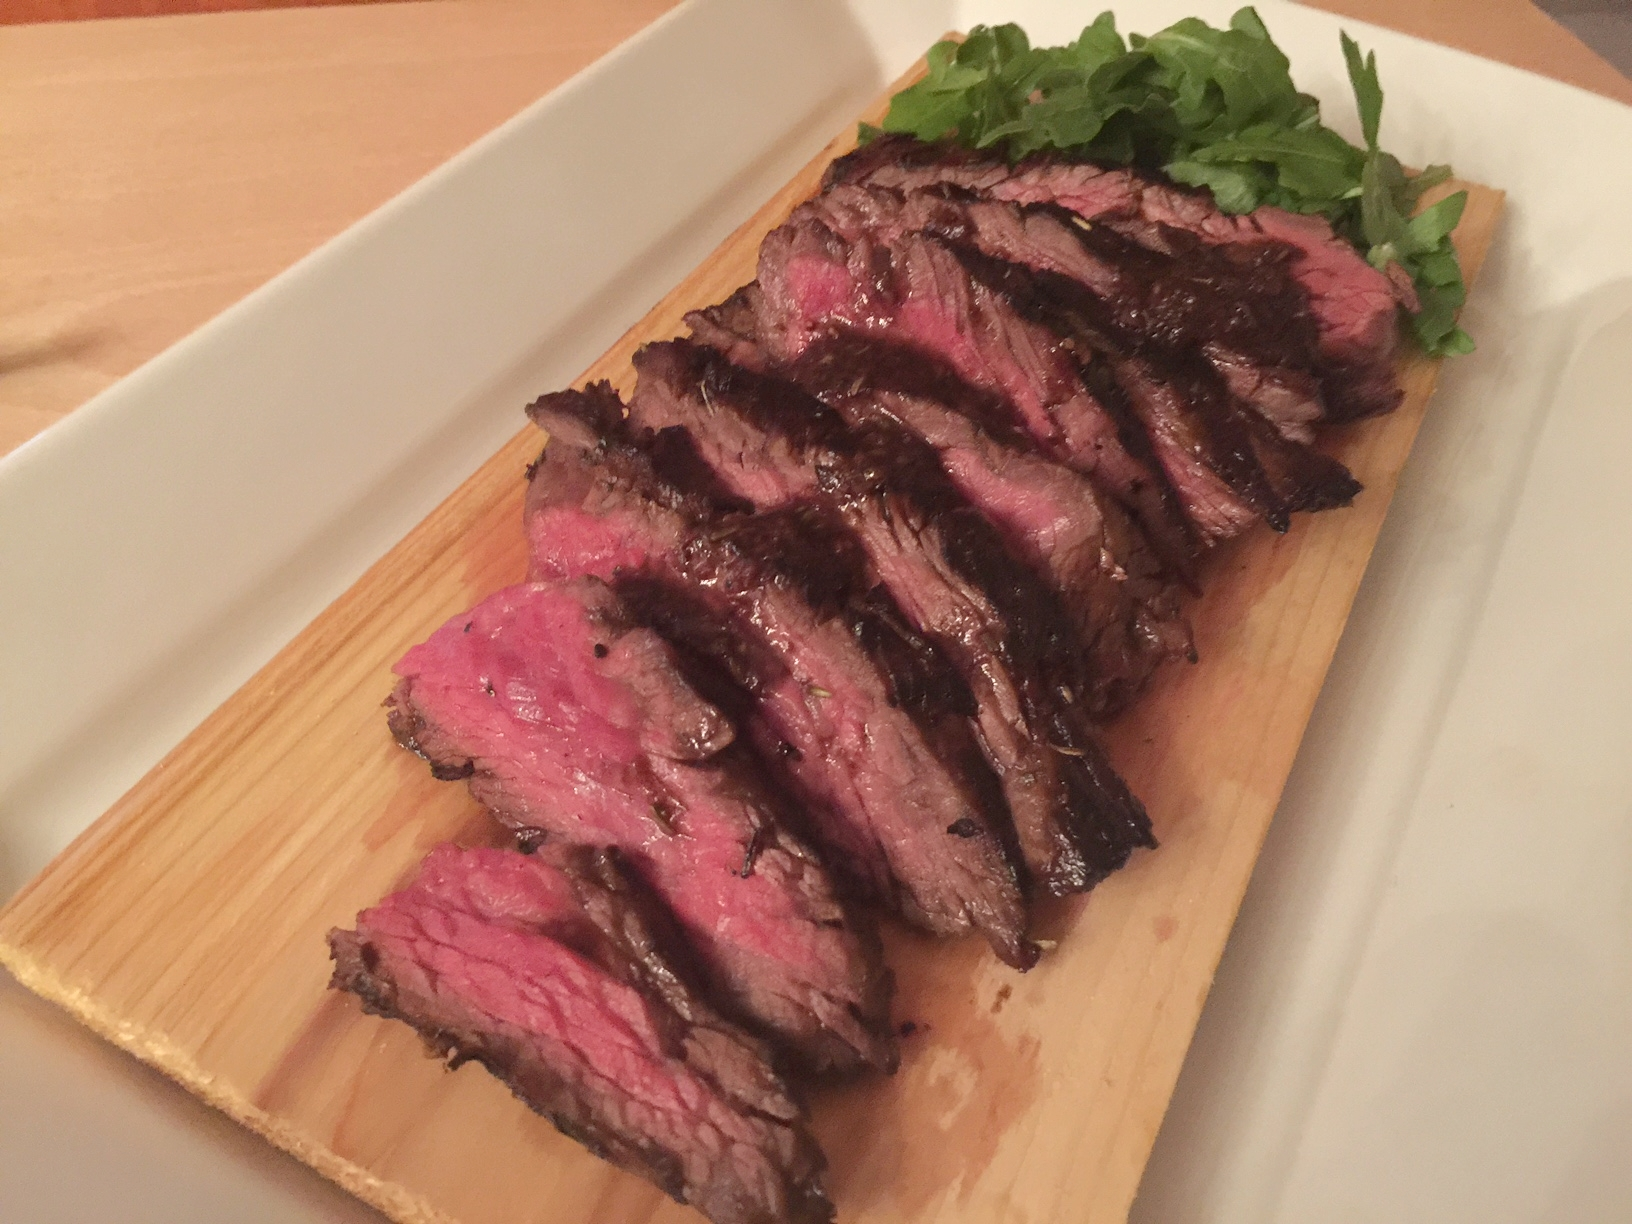 Can you guess which type of steak is pictured? Bet you can't, because they all look very similar. This one happens to be a delicious, juicy skirt steak cooked to 125 degrees.Garnish with baby arugula.